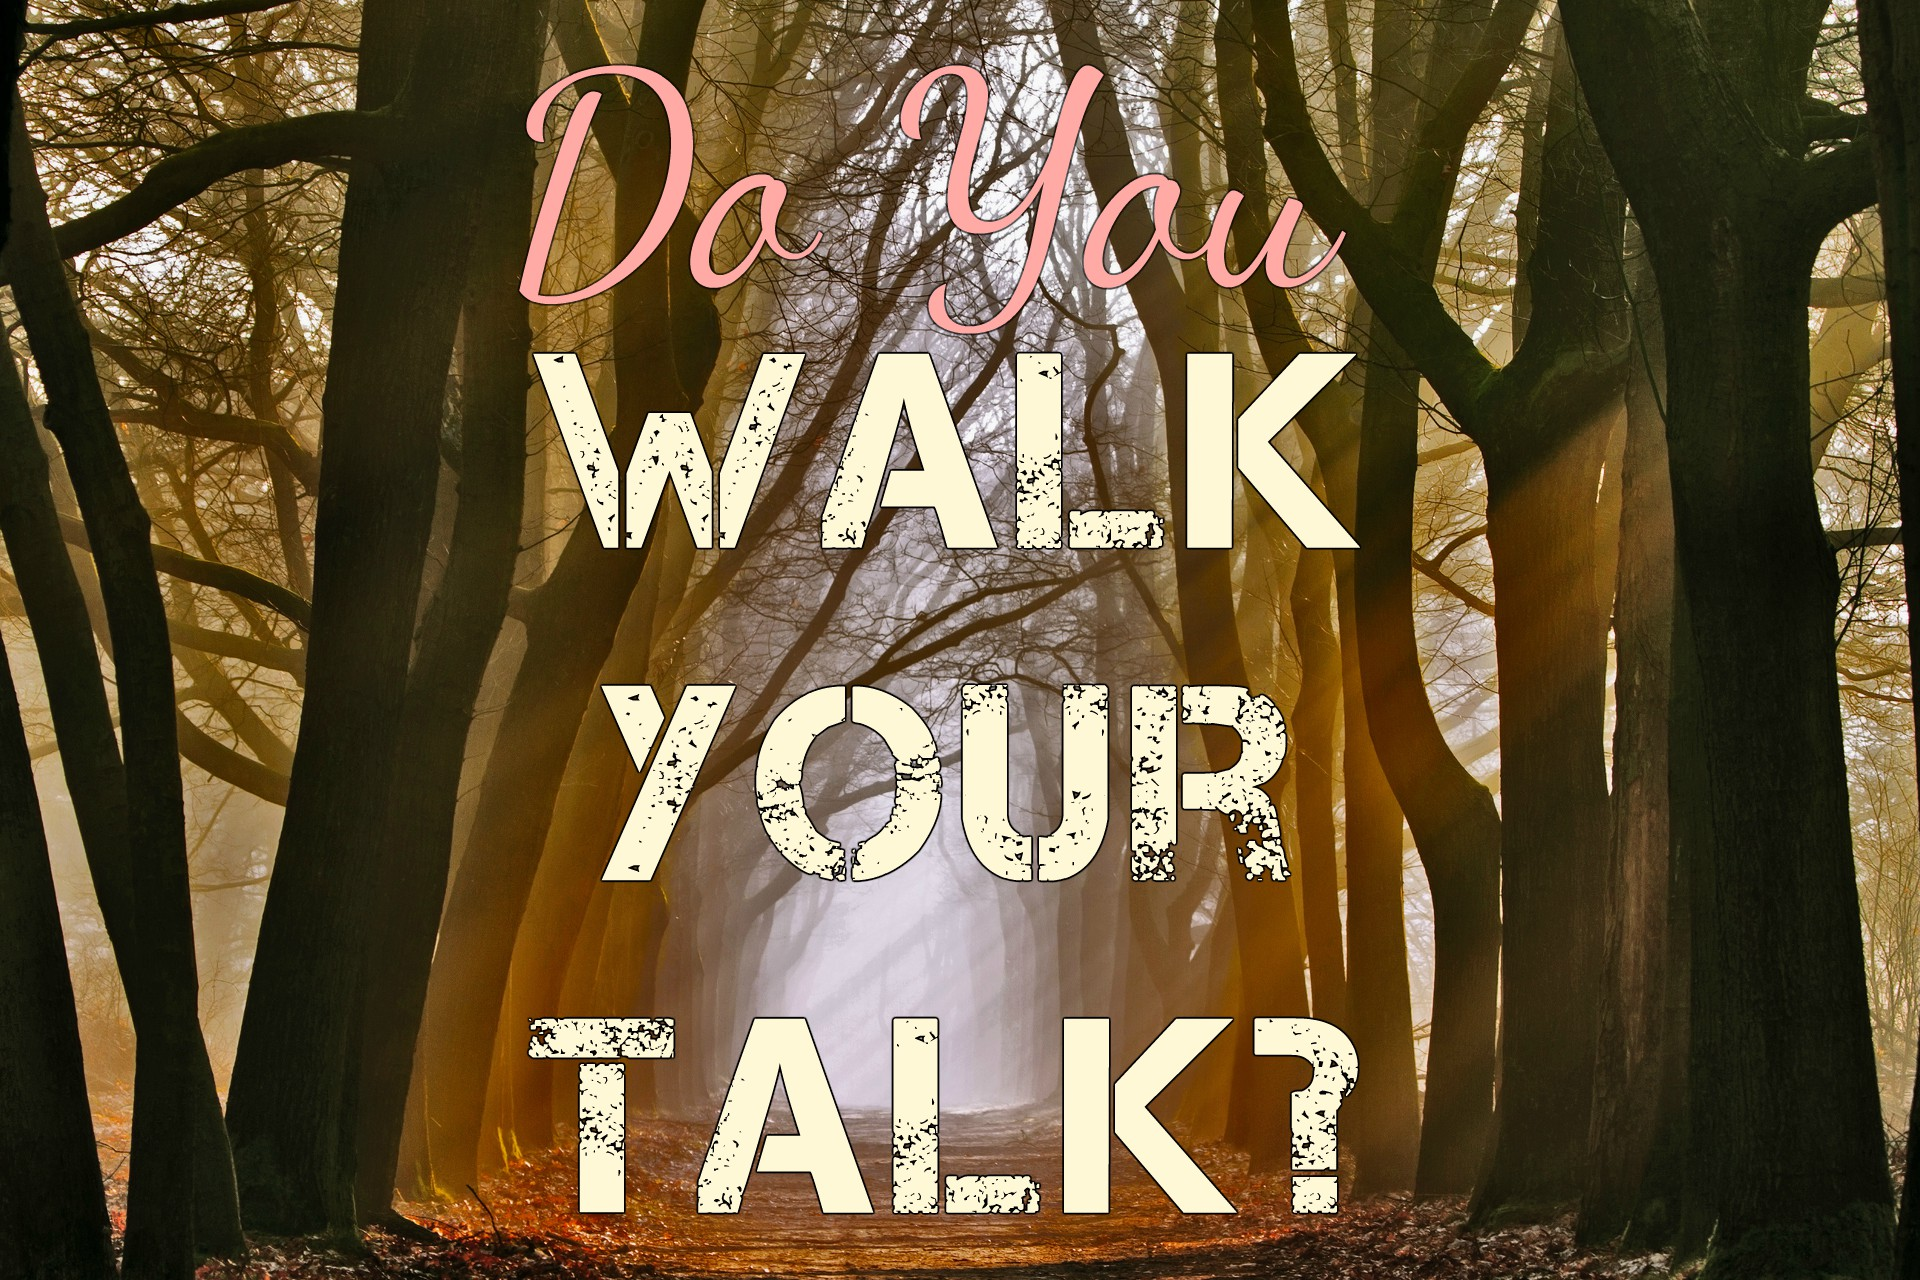 walk-the-walk-talk-the-talk-251231.jpg